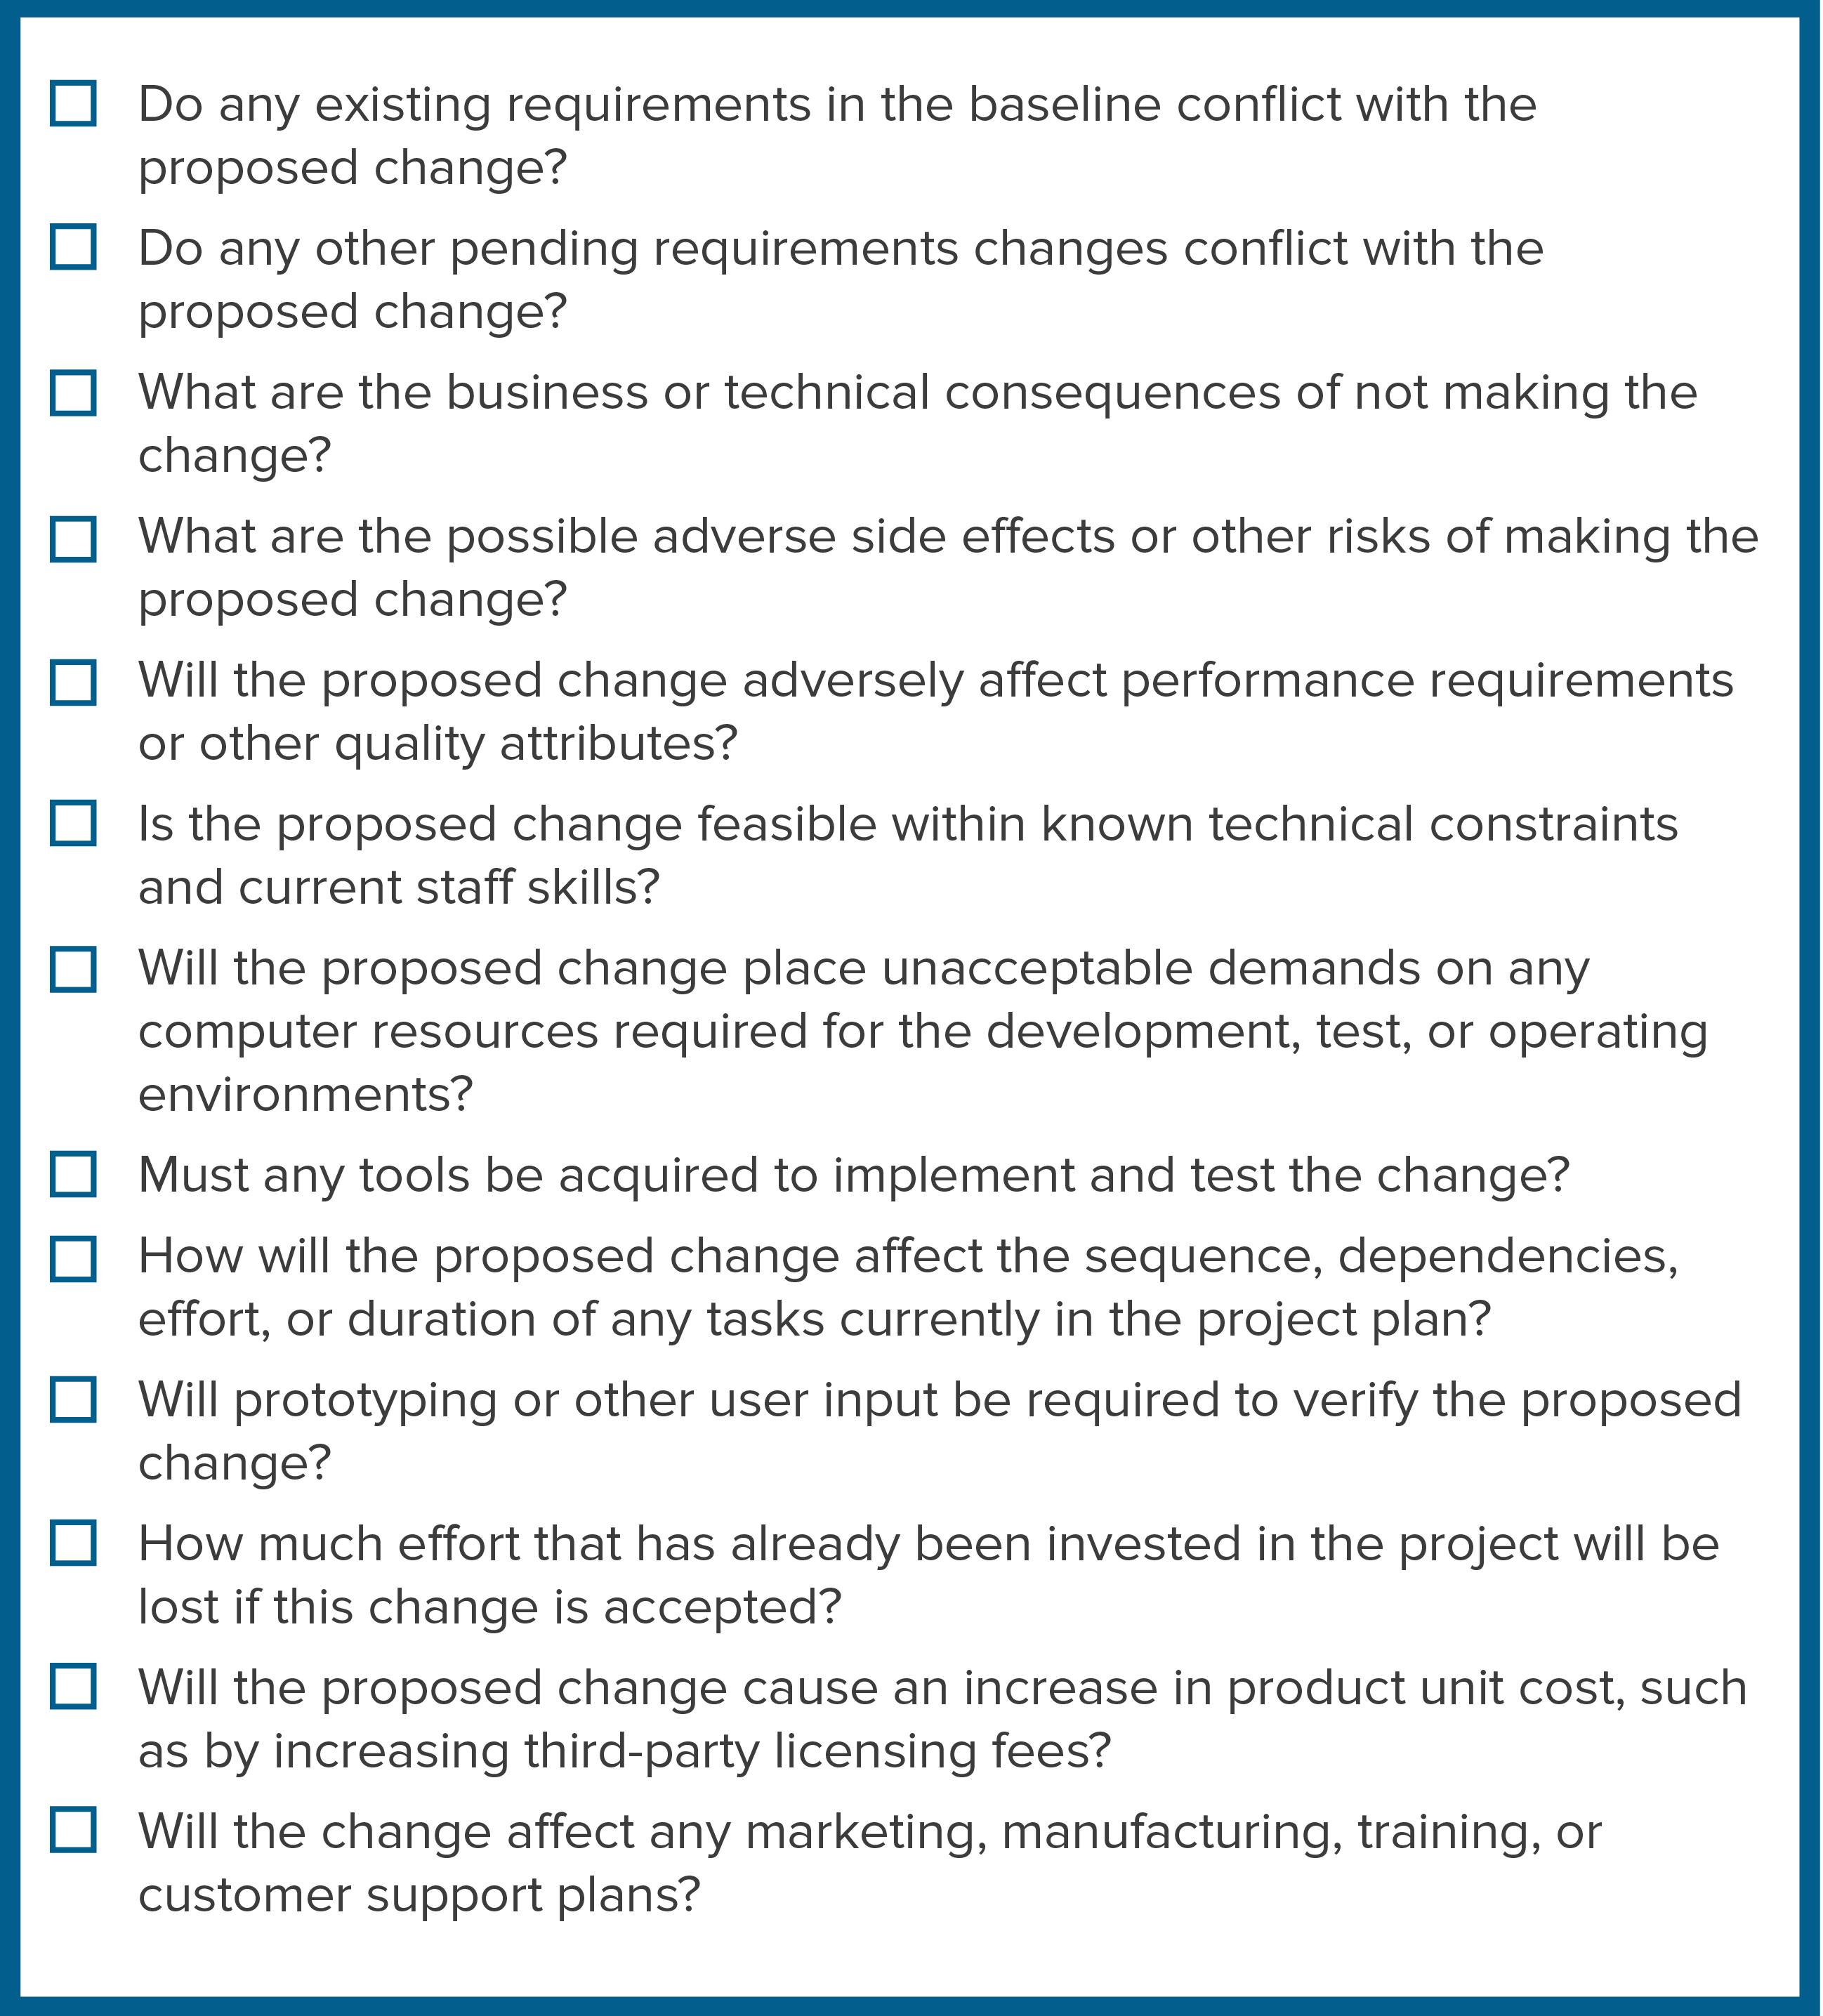 Checklist of possible implications of a proposed change.